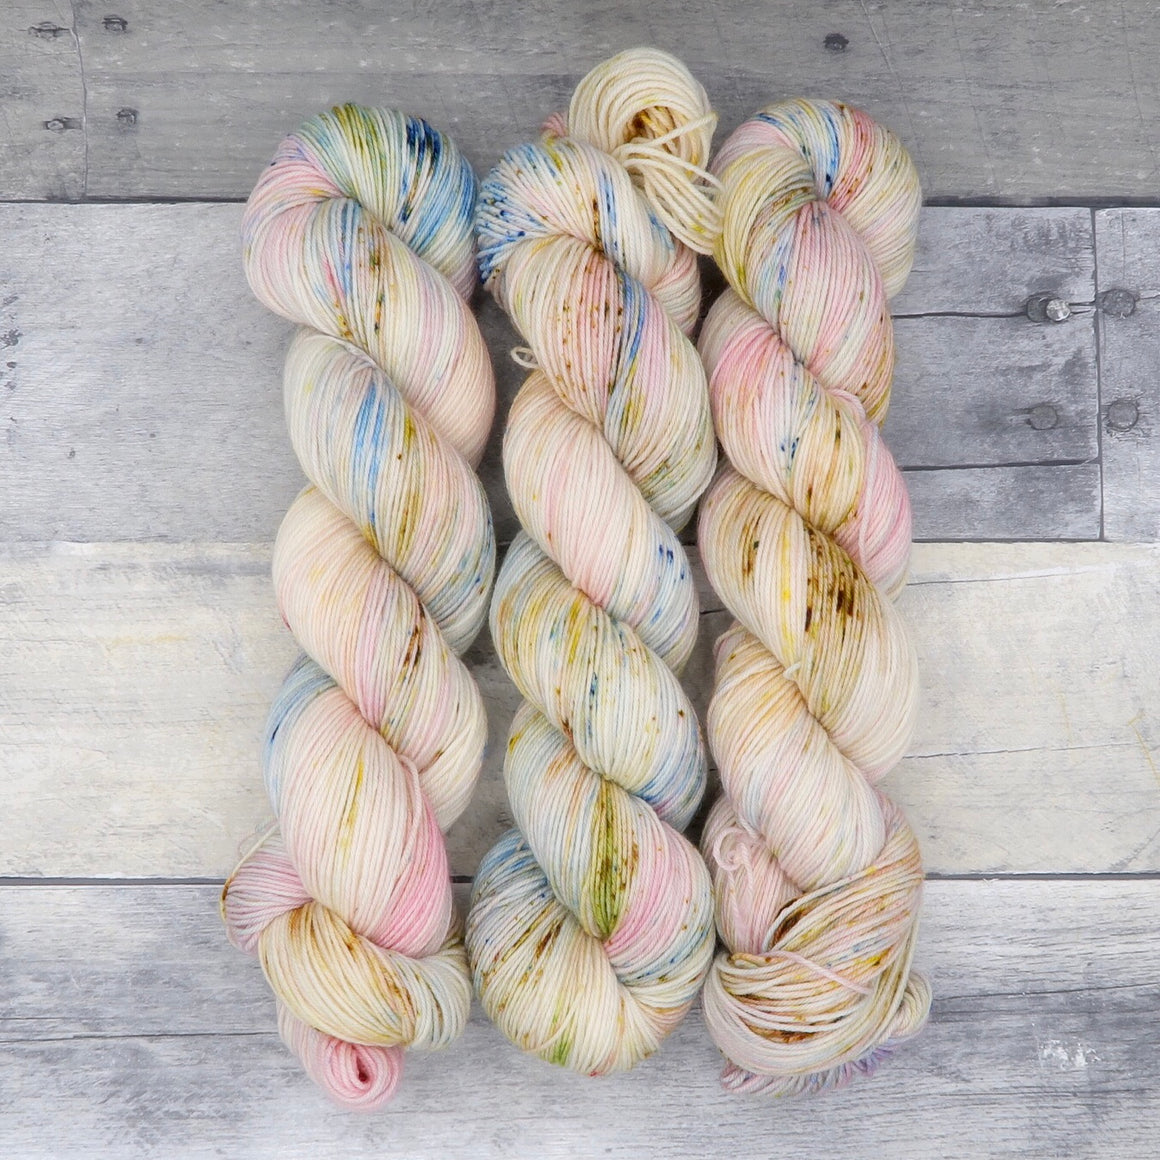 Happy Accident 3/2/19 - (Everyday Sock, speckled) - light speckled blue and yellow with pale pink